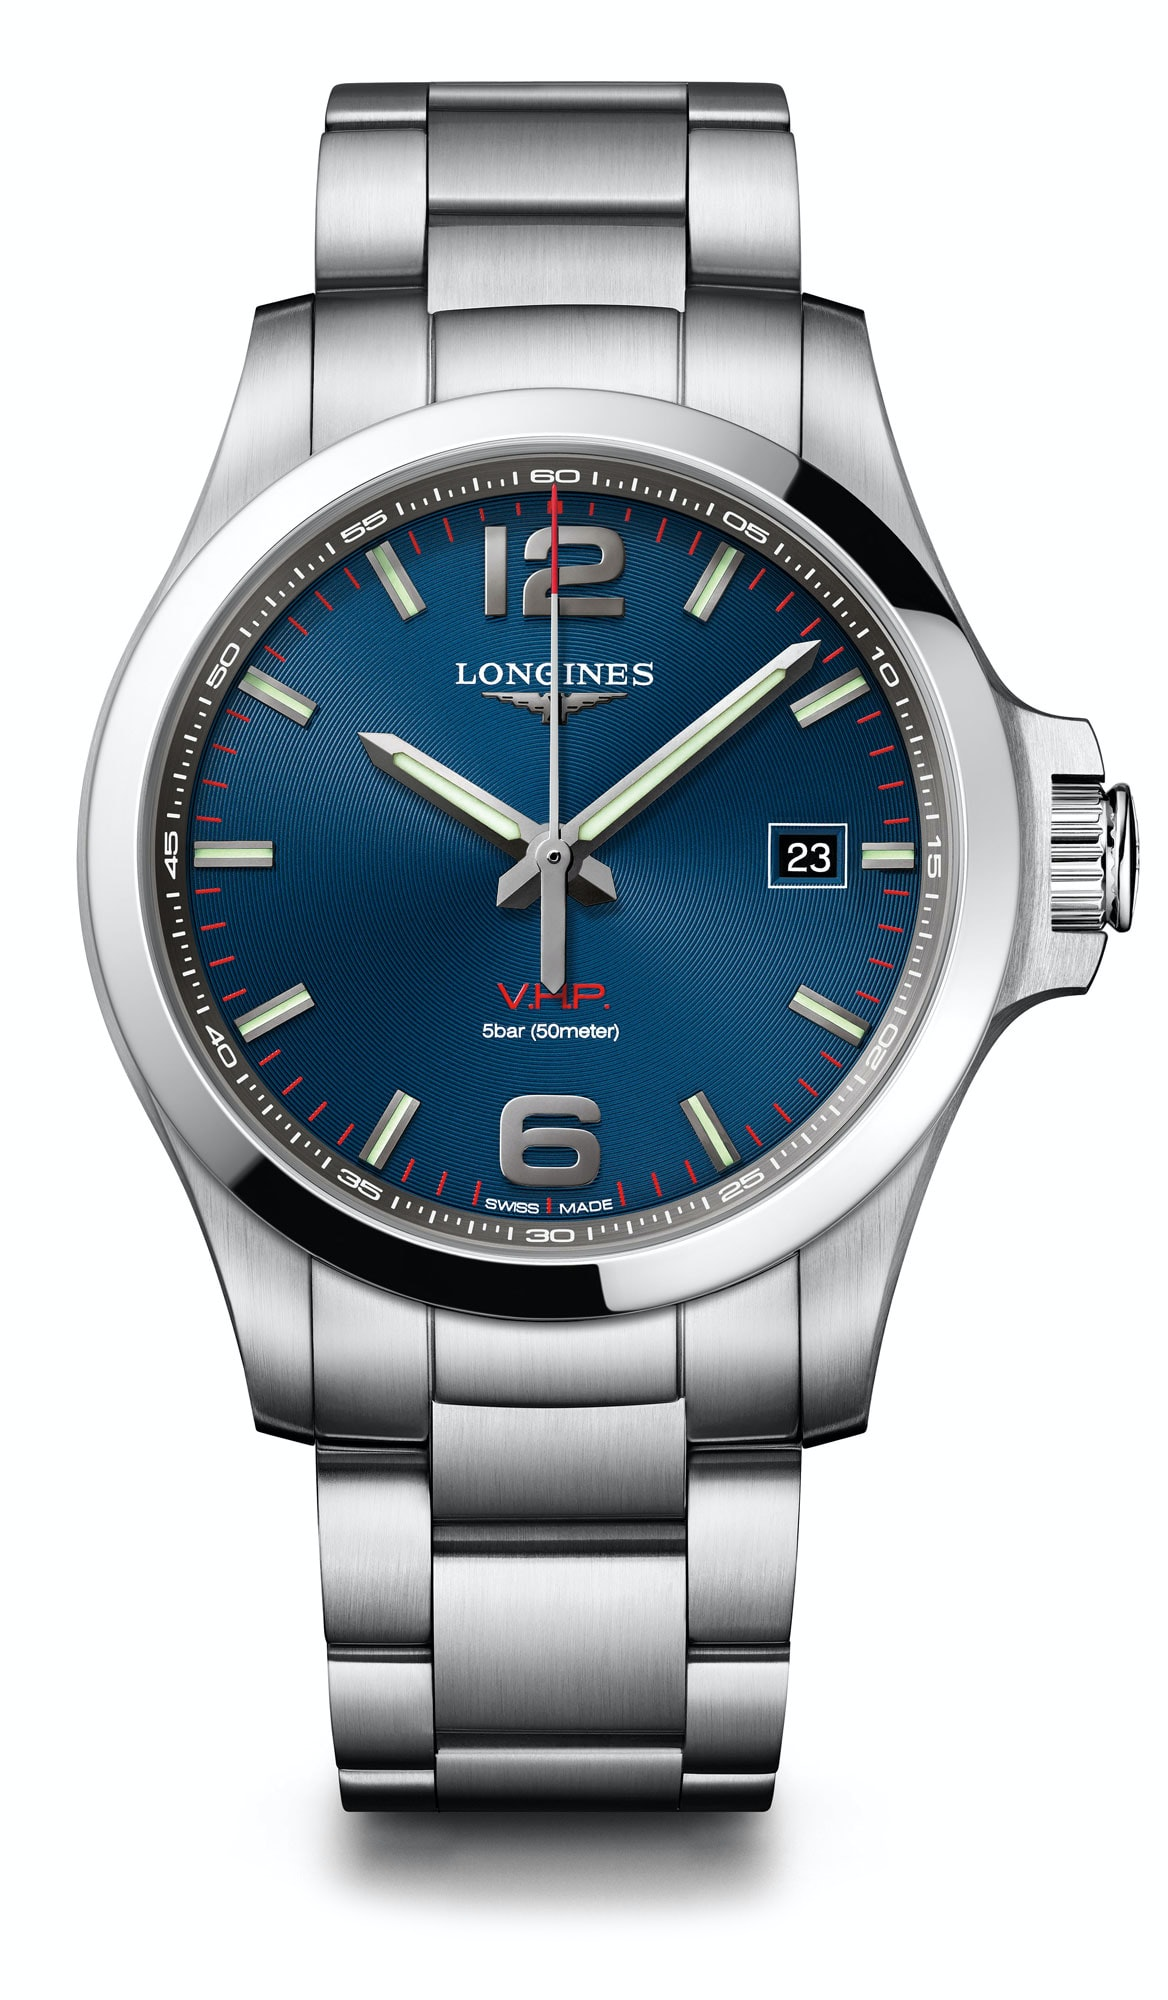 Interview: Longines VP Juan-Carlos Capelli On Why His Company Continues To Invest In Quartz Interview: Longines VP Juan-Carlos Capelli On Why His Company Continues To Invest In Quartz L3